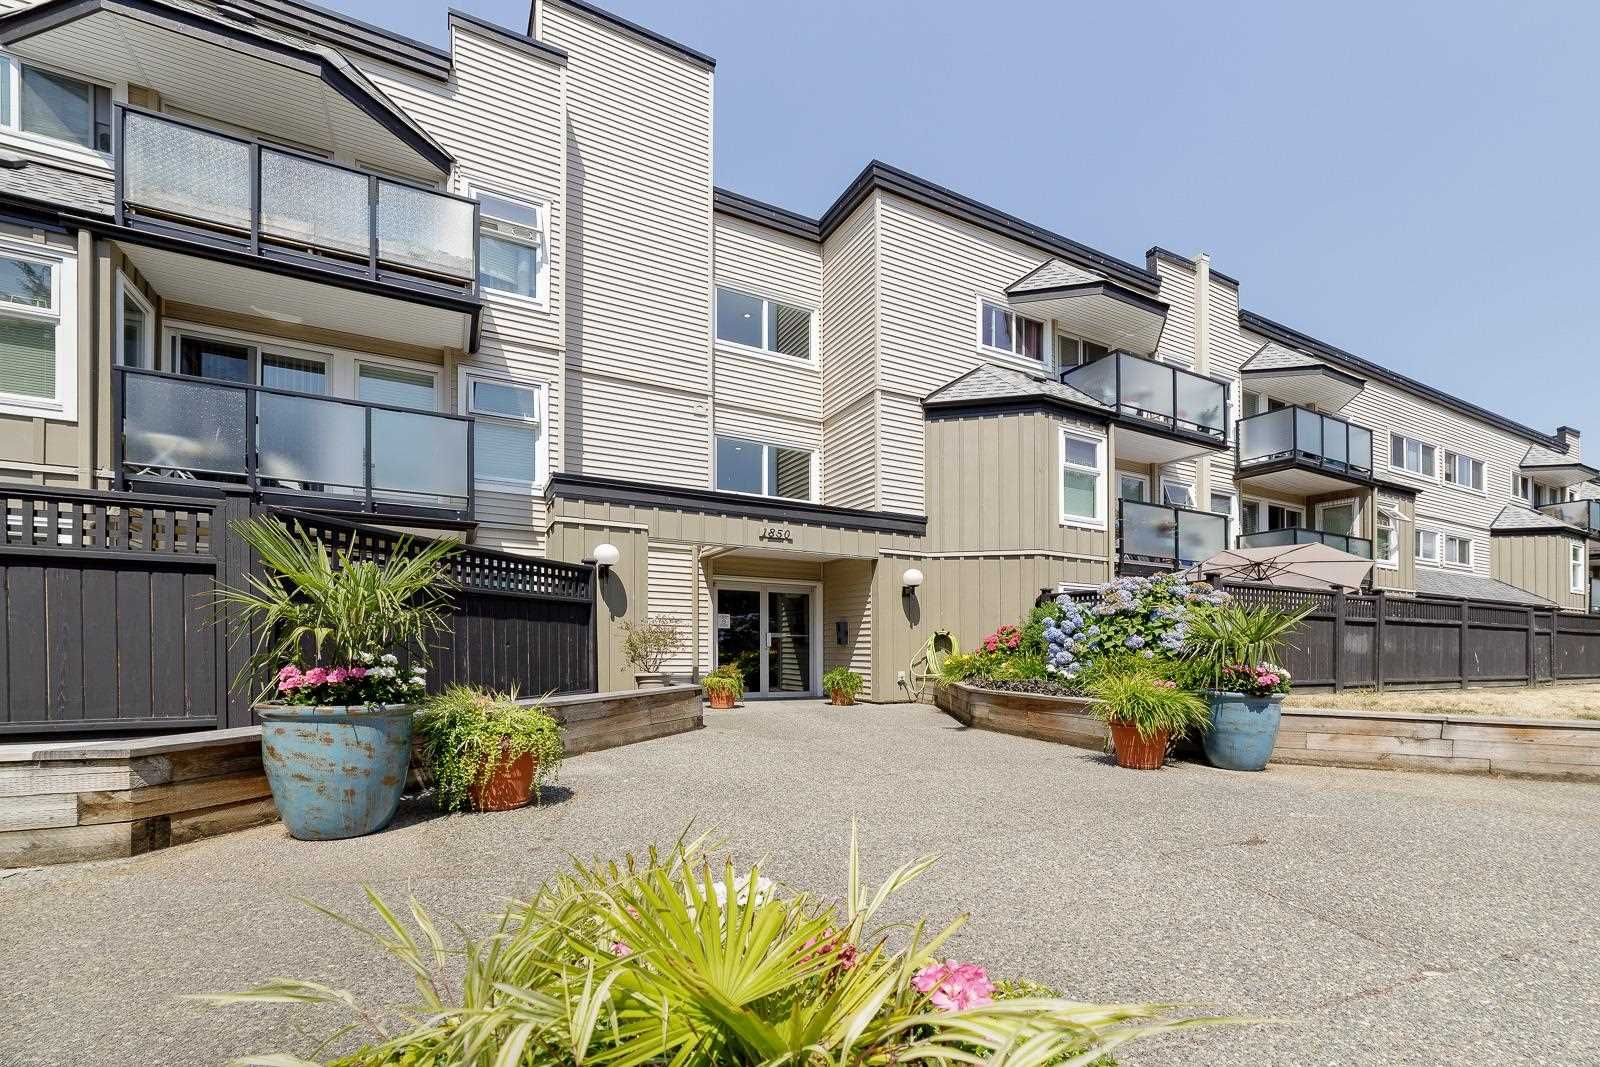 """Main Photo: 217 1850 E SOUTHMERE Crescent in Surrey: Sunnyside Park Surrey Condo for sale in """"SOUTHMERE PLACE"""" (South Surrey White Rock)  : MLS®# R2603585"""